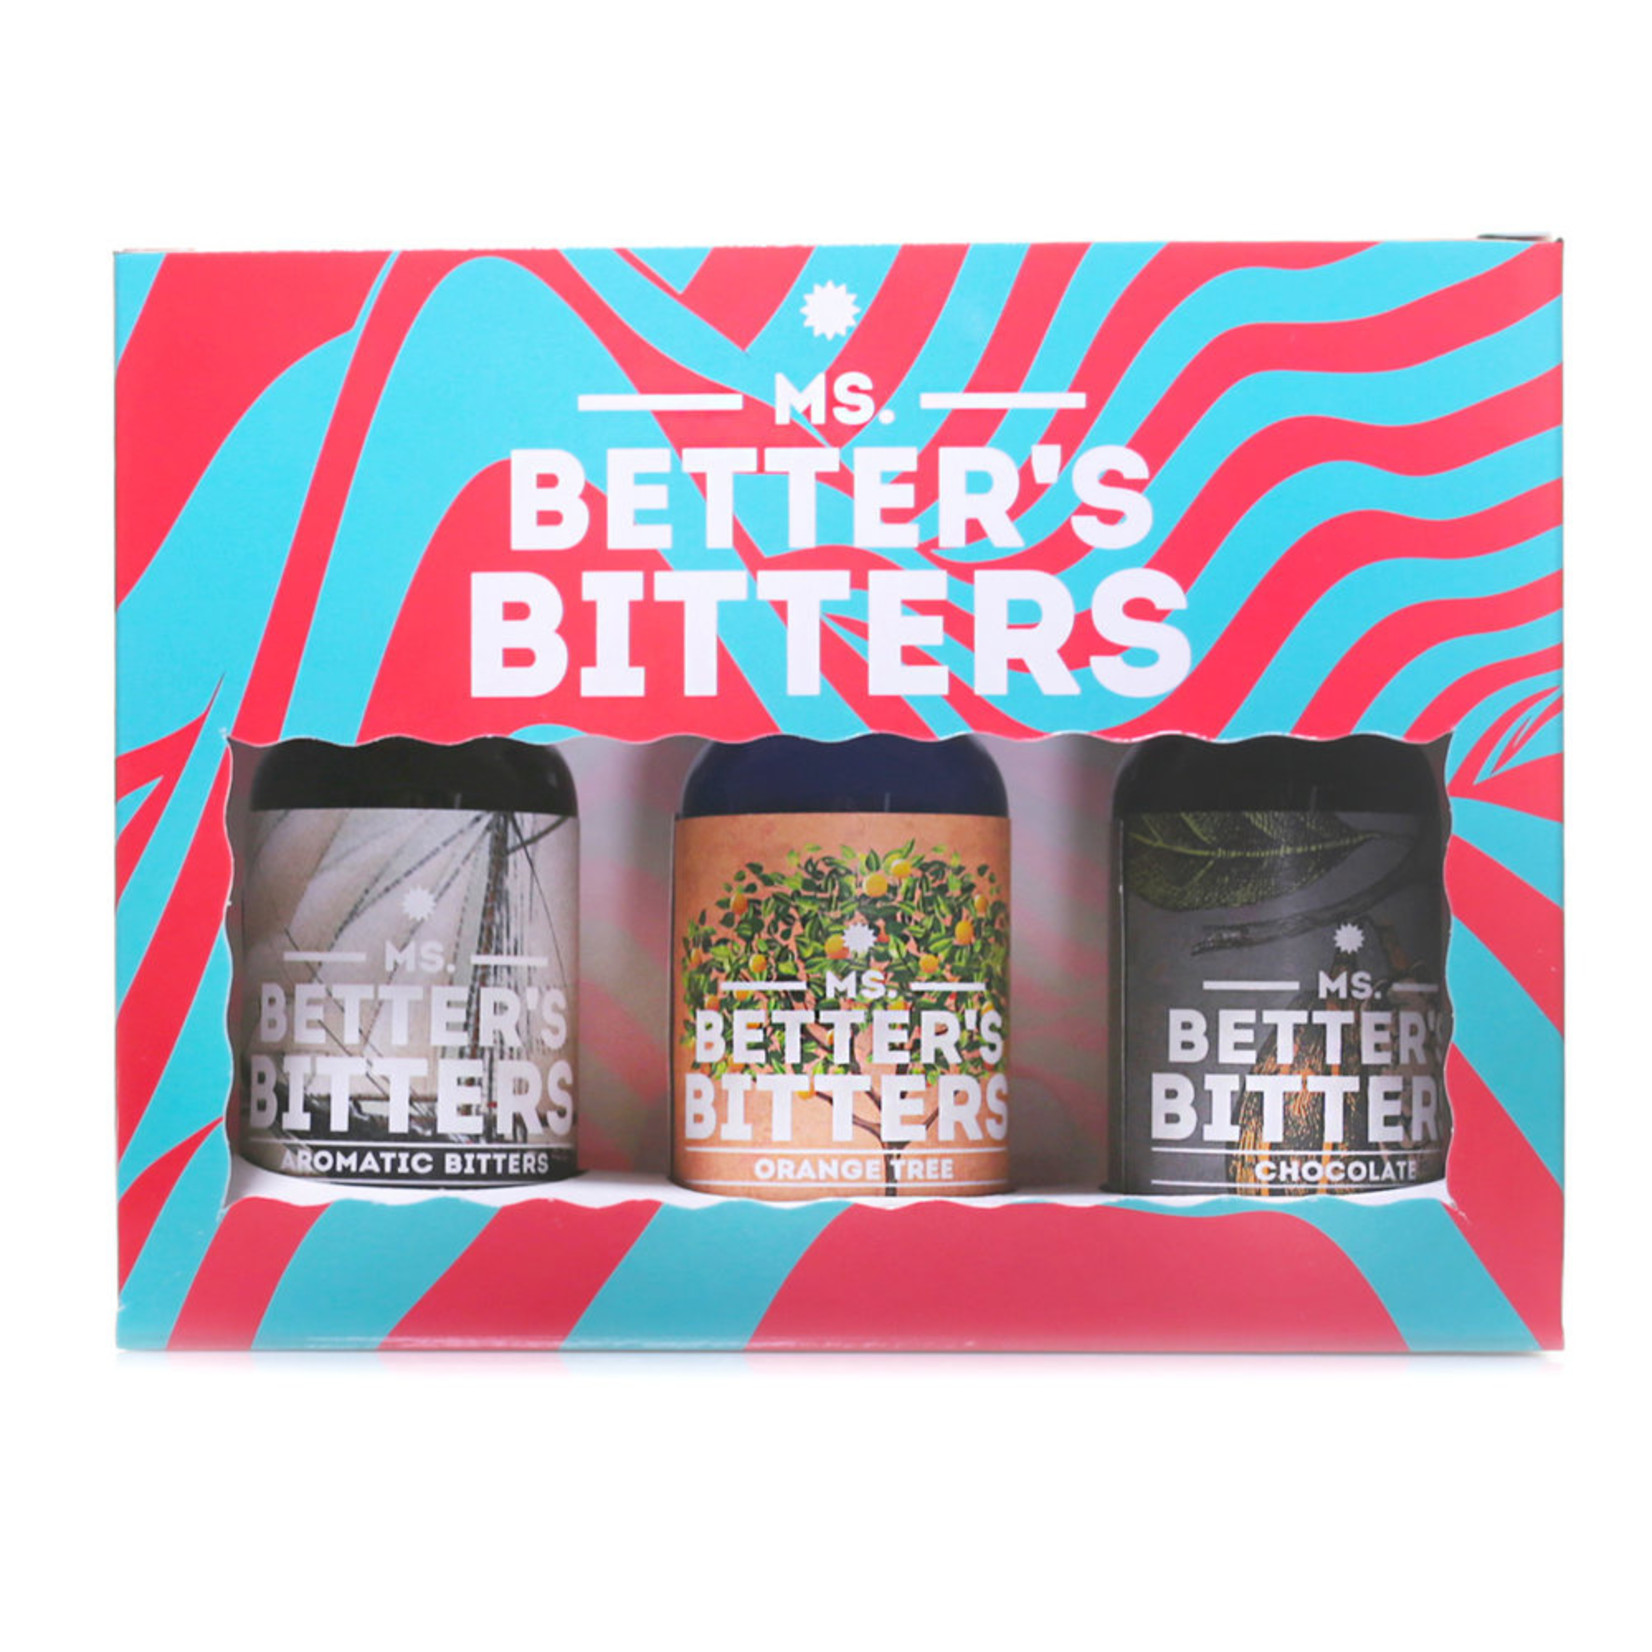 Ms Better's Bitters Ms Better's Bitters Gift Box Classic